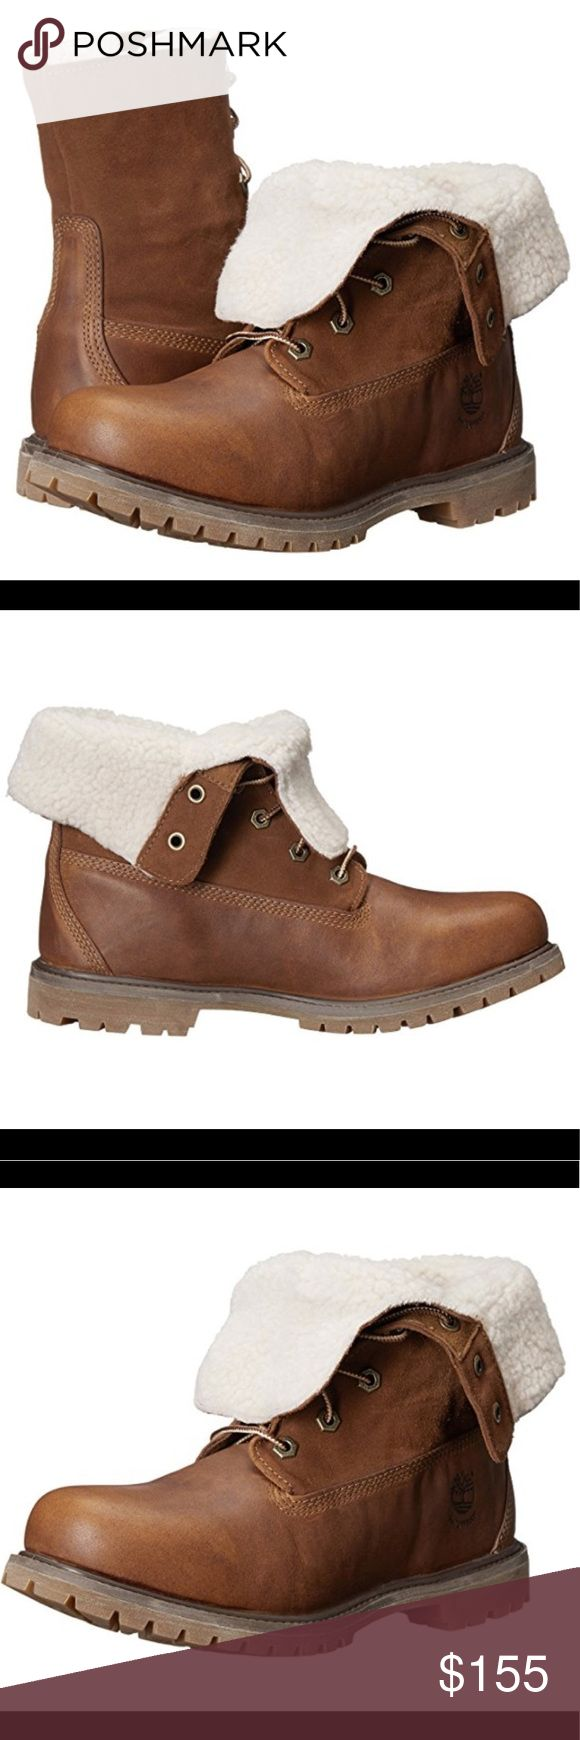 """NEW Timberland Boots NEVER WORN BEFORE! This is the authentic """"Timberland Women's Teddy Fleece Fold-Down Waterproof Boot"""" in """"Tobacco Forty Leather"""" — sold out online!! Slightly flexible with pricing :) Timberland Shoes Winter & Rain Boots"""